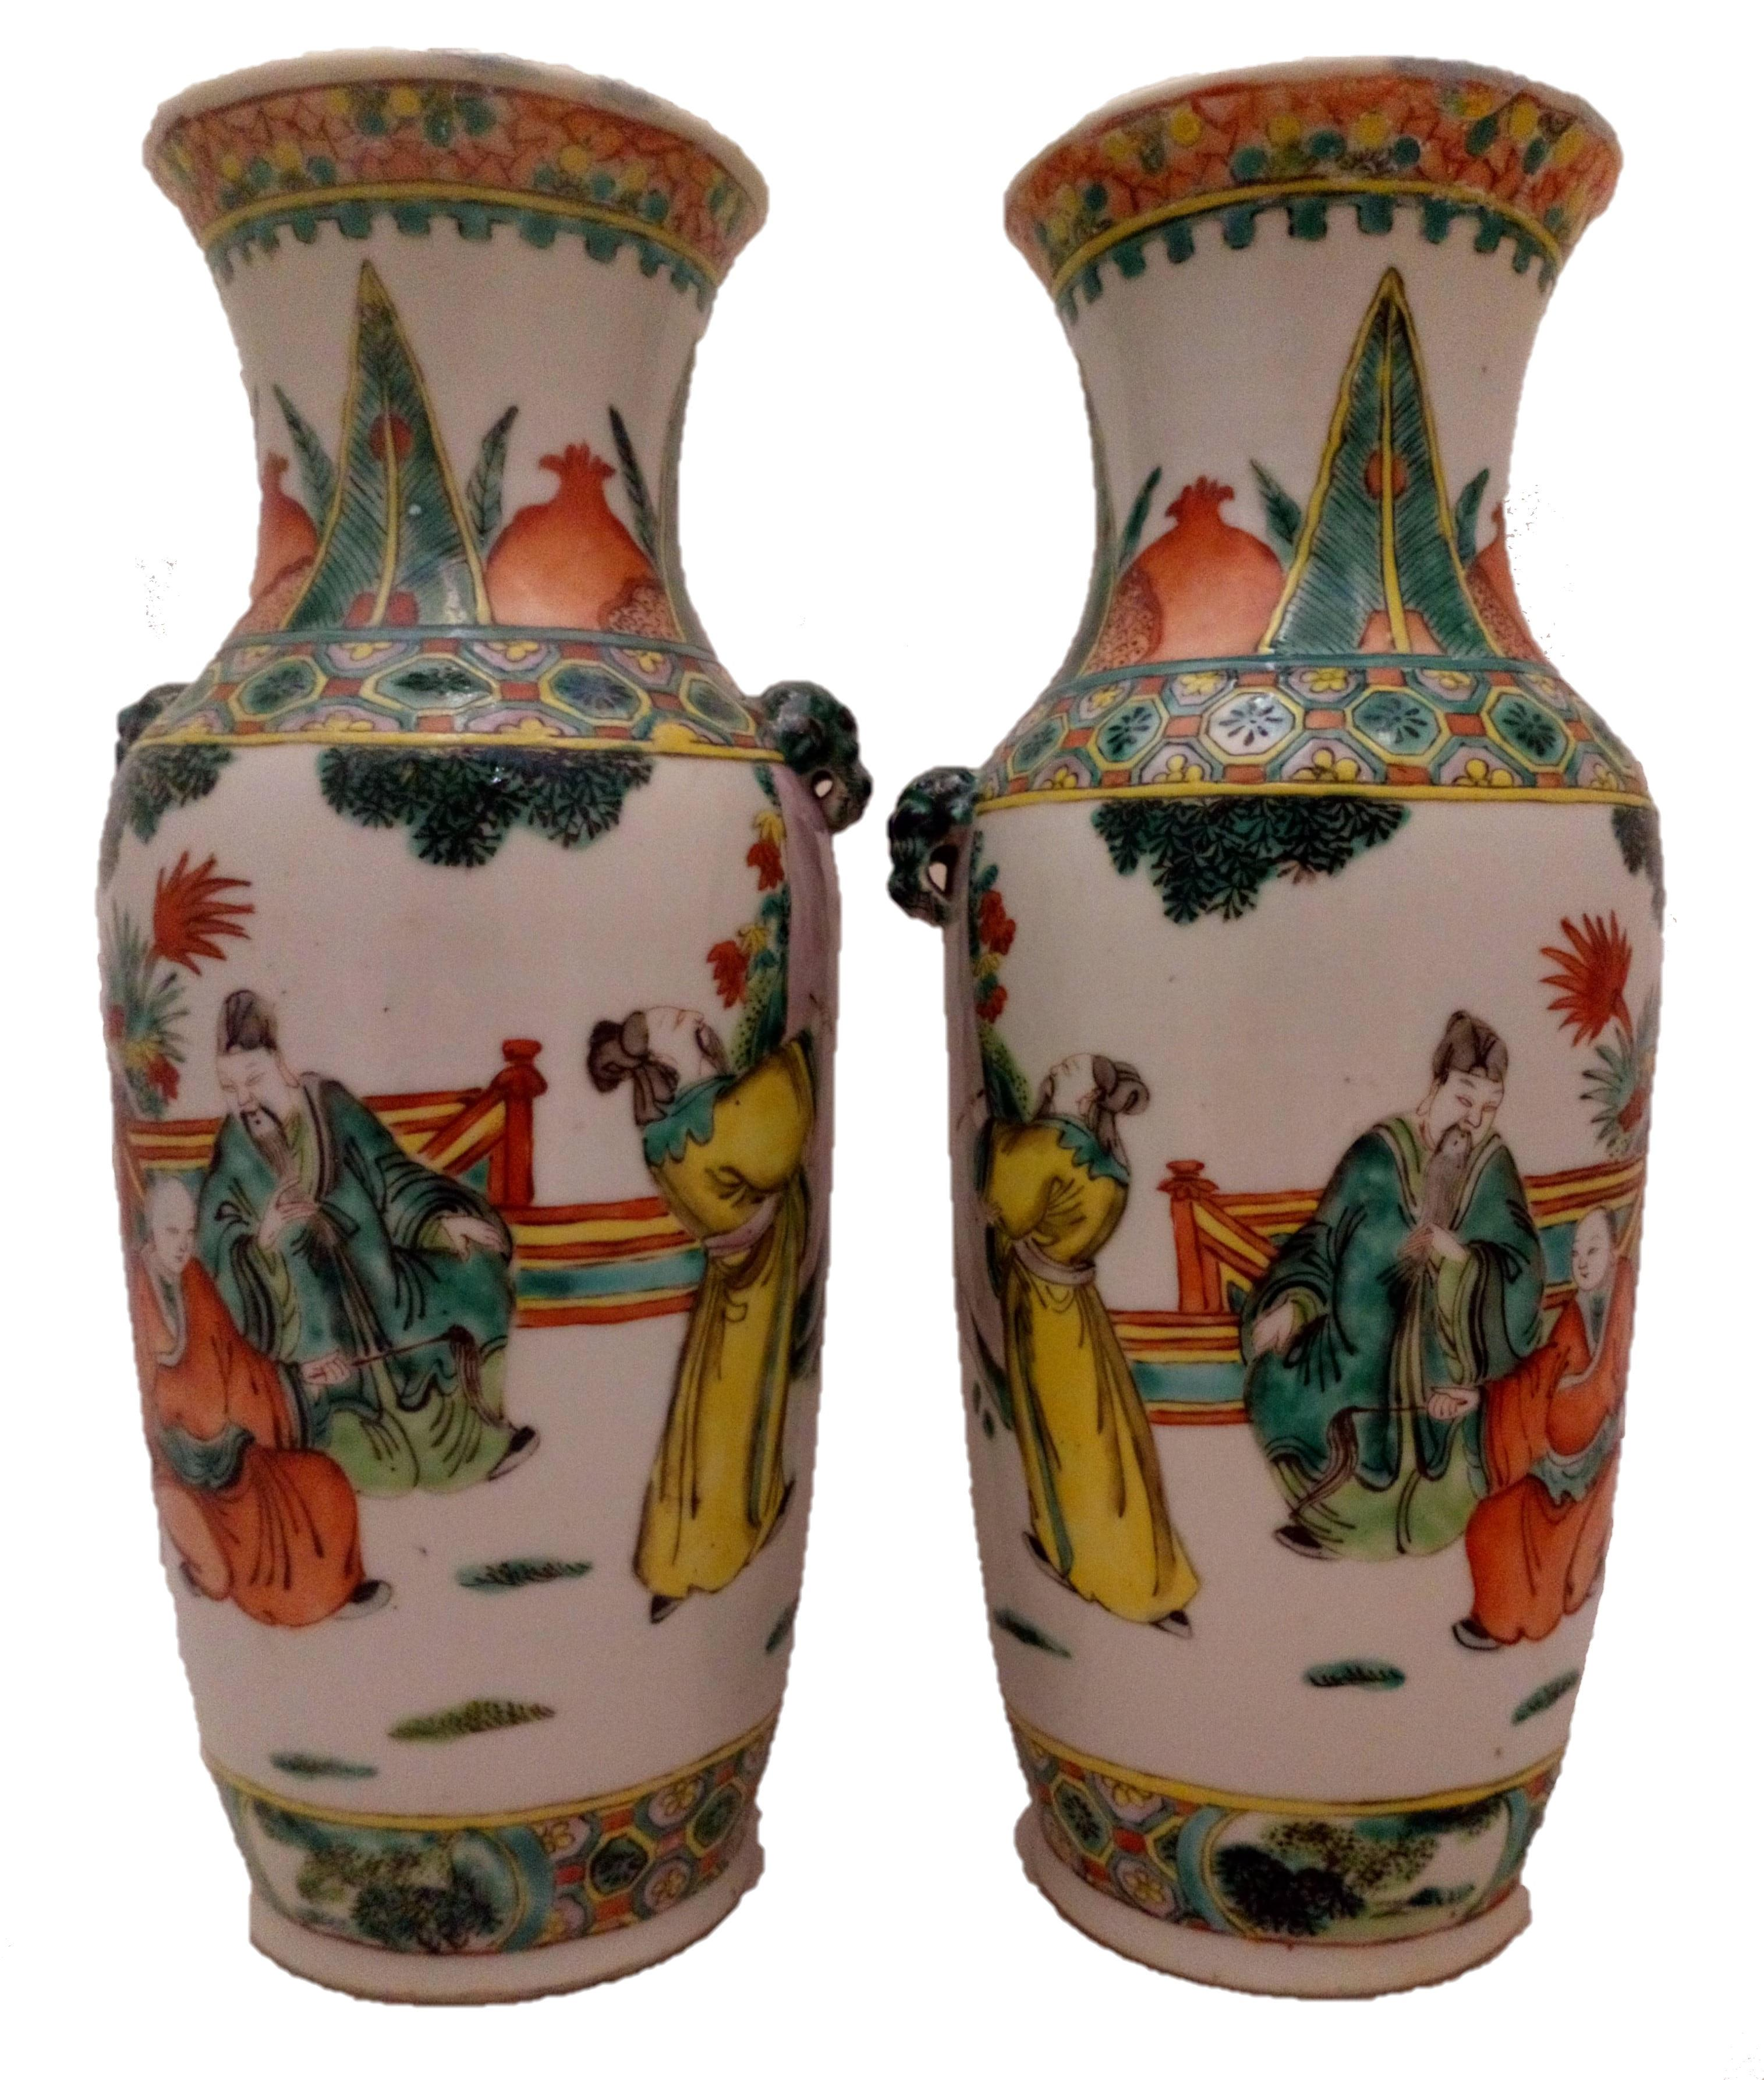 An antique pair of Chinese porcelain vases hand painted in the Famille Verte palette with Scholars and Emperor from the late Qing Dynasty 清代